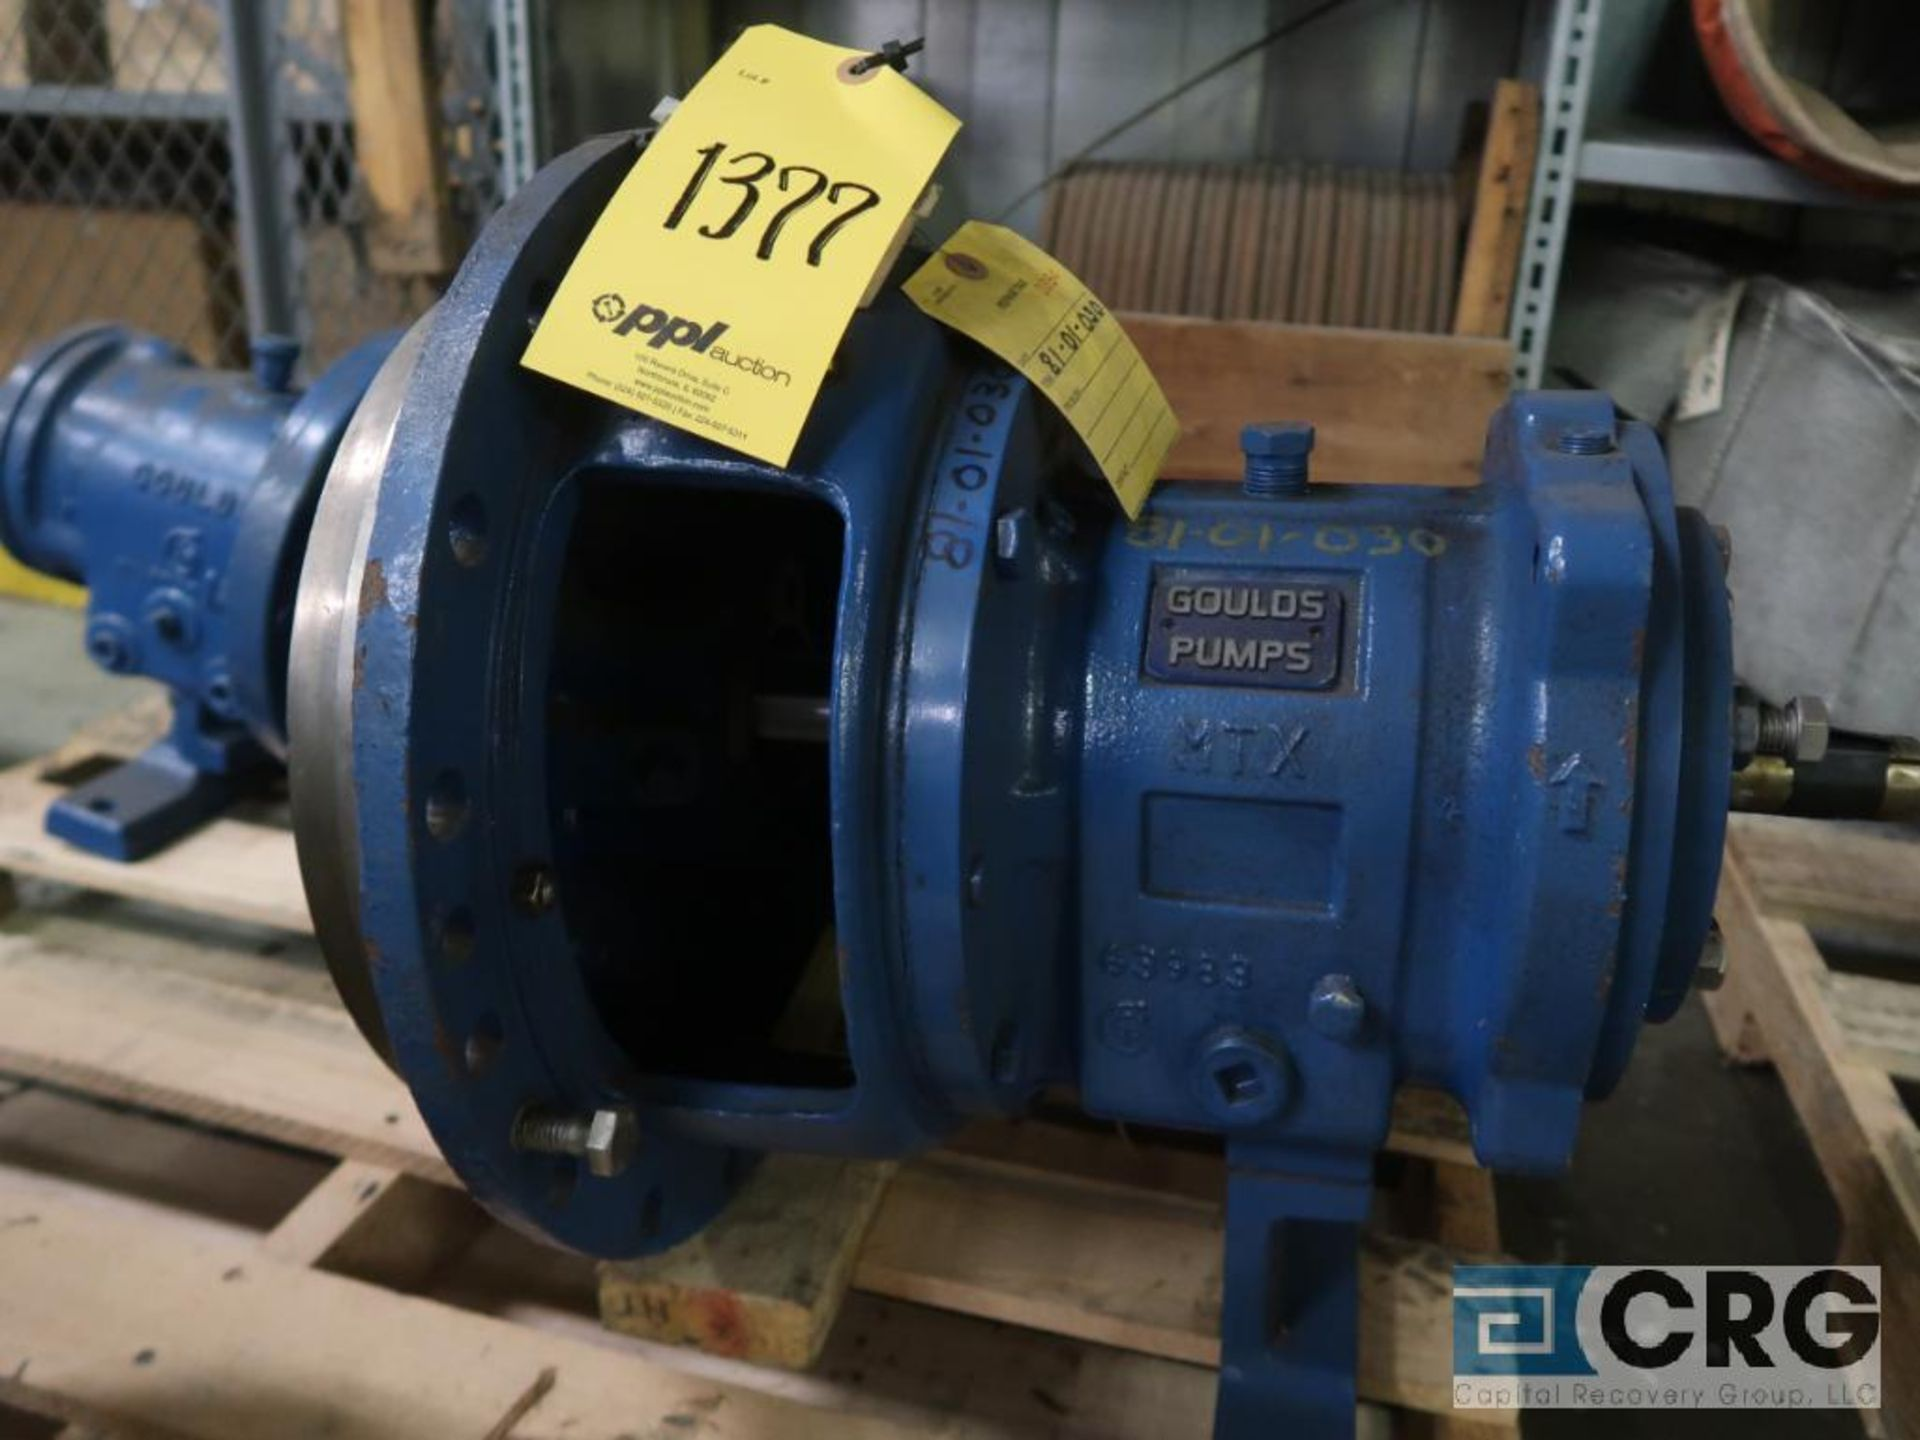 Lot of (3) Goulds 3196 pumps, (2) 13 in.-(1) LTX & (1) MTX, and (1) 10 in. MT/MTX (Basement Stores) - Image 3 of 4